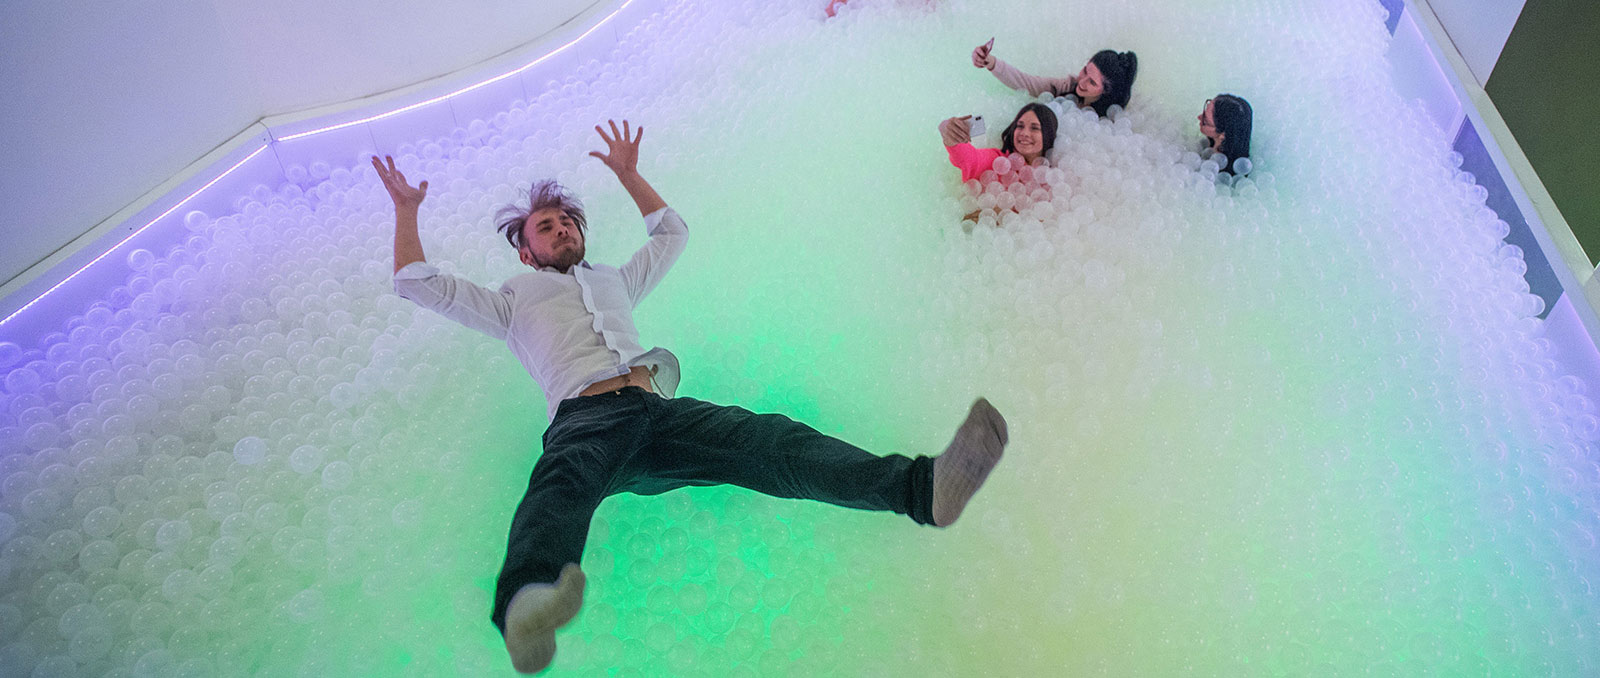 Museum of Sweets and Selfies - Bubbles, hazánk első Bubble Pool Bárjával